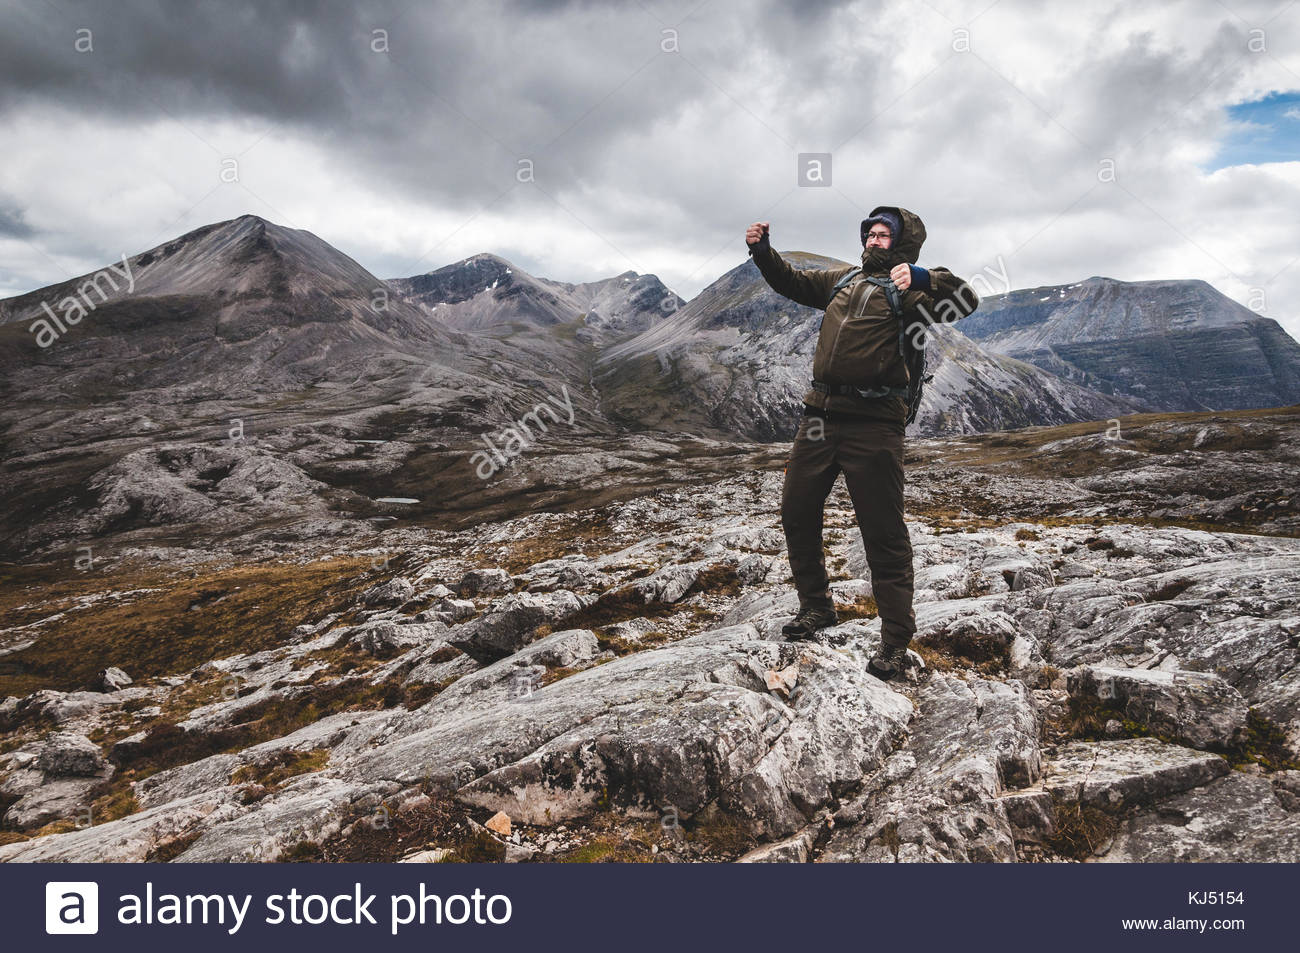 man beating chest on cliff top - Stock Image